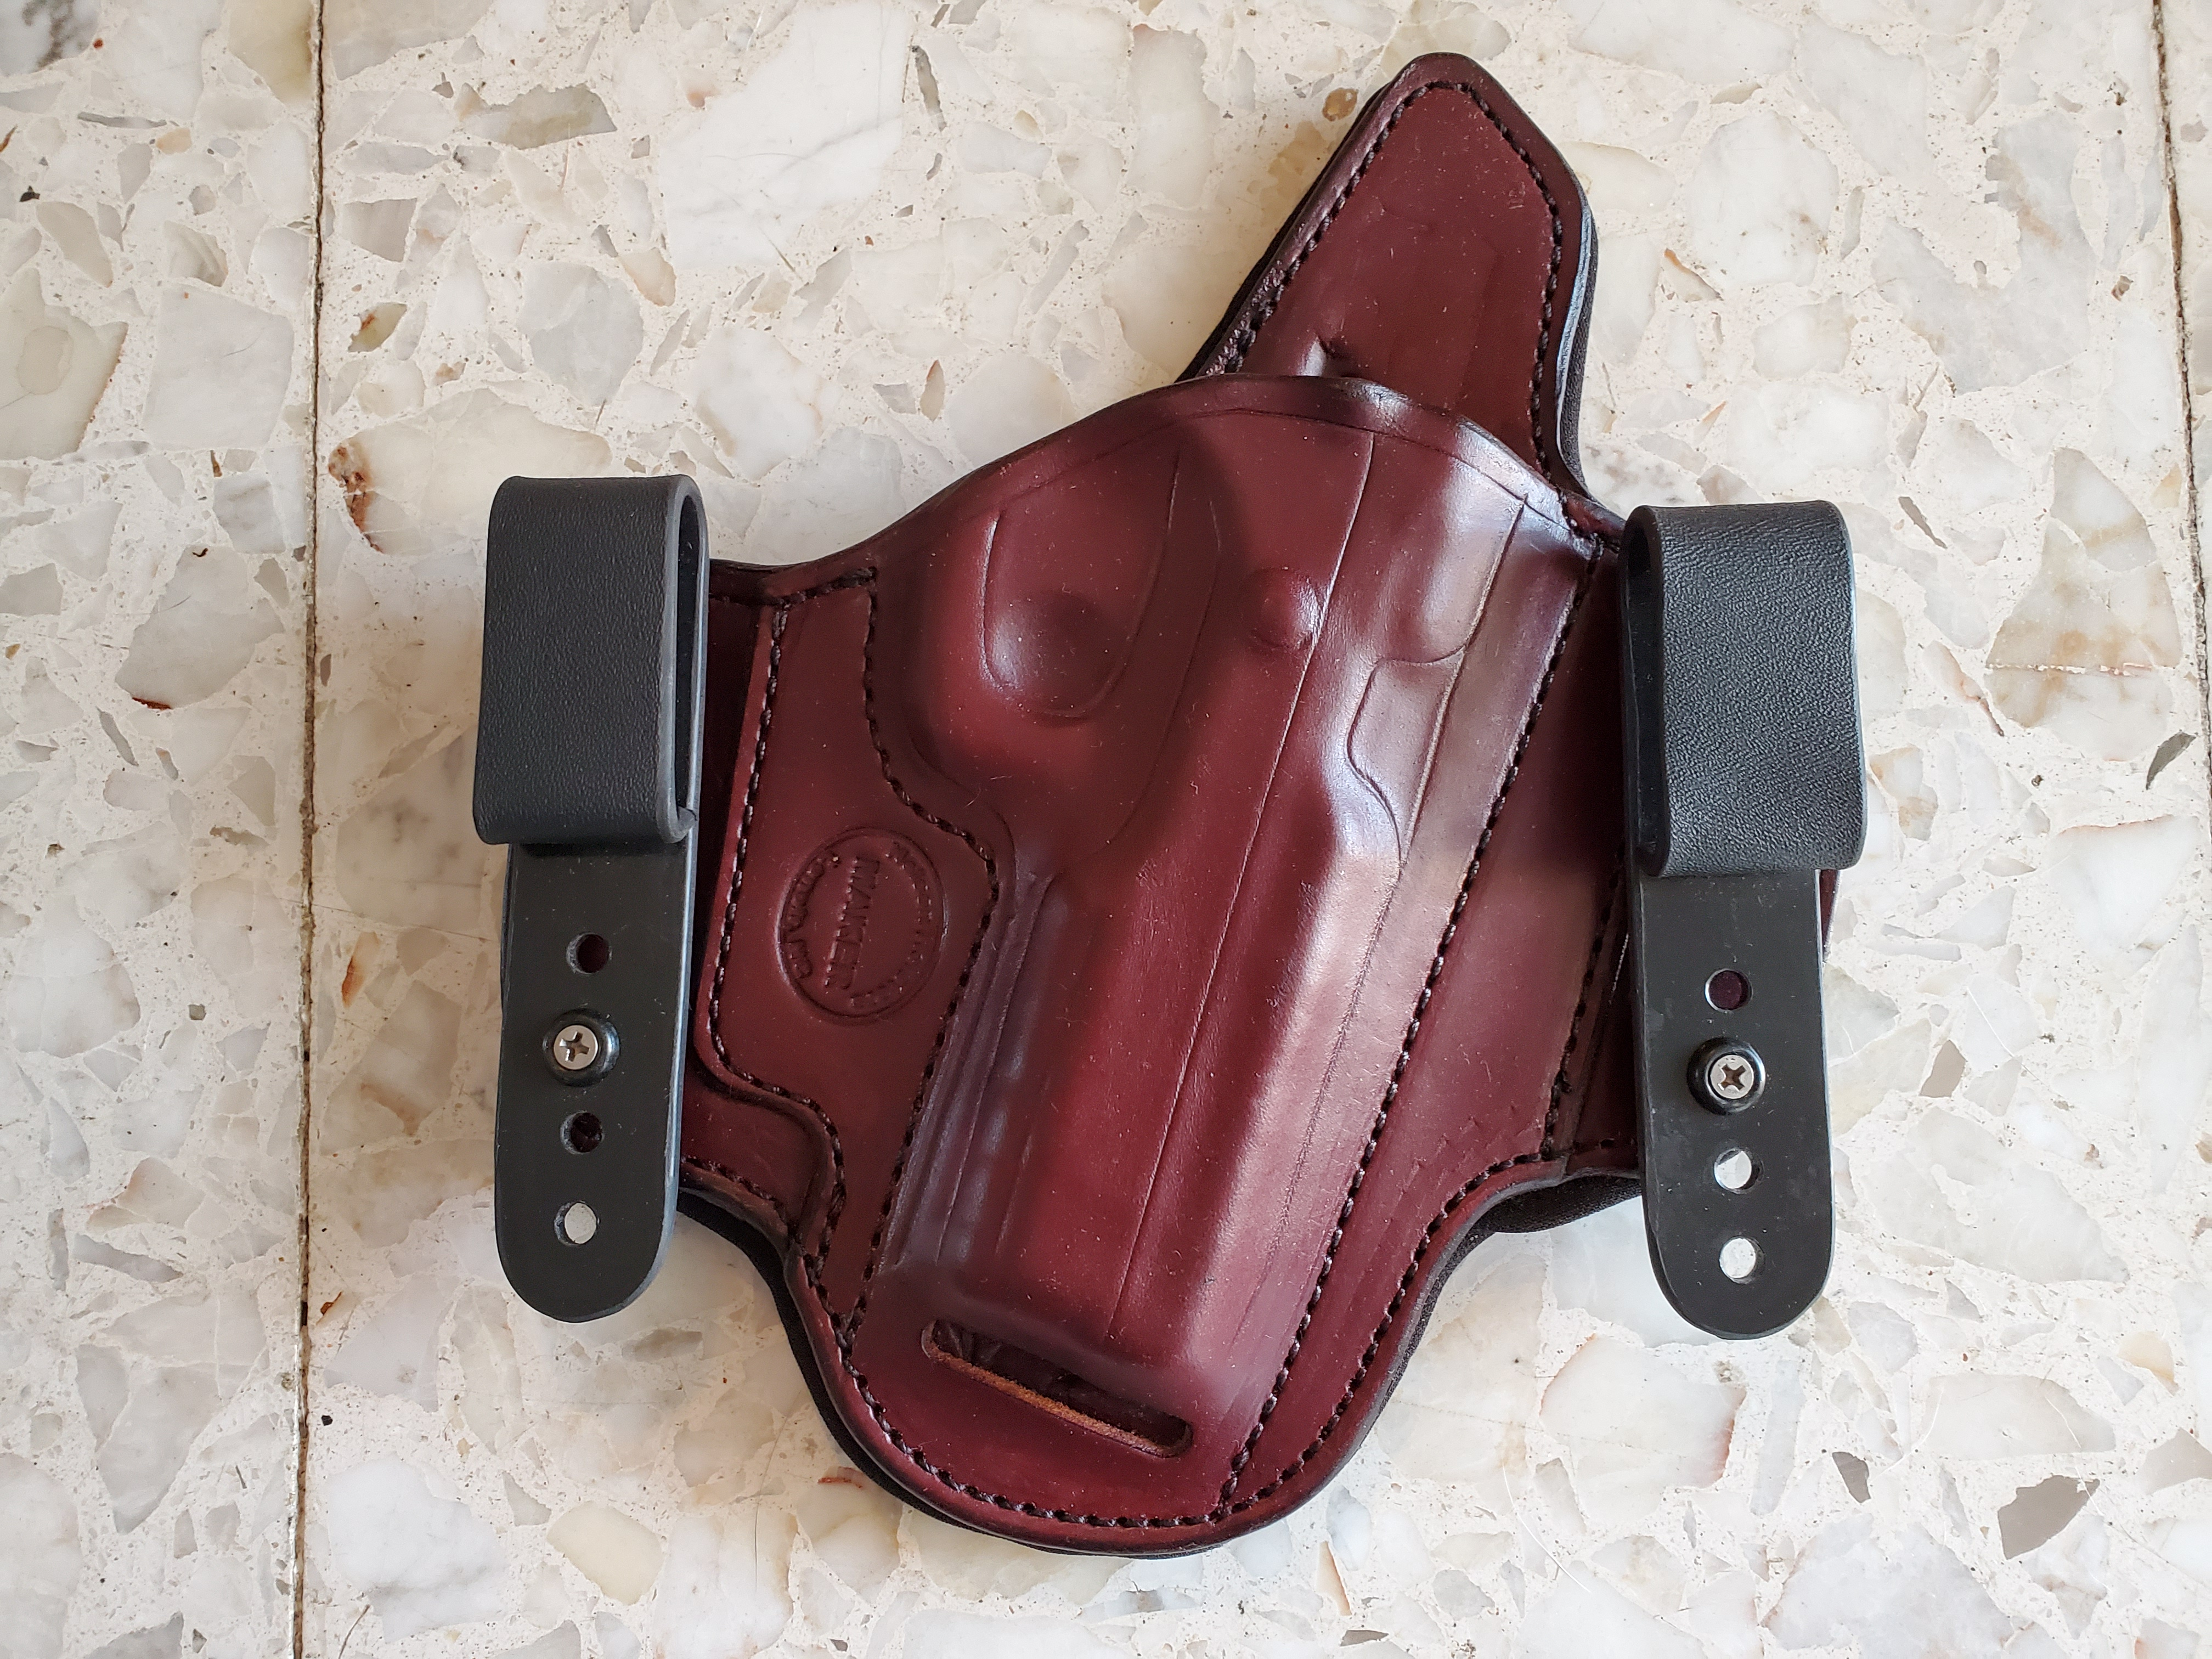 Selling New Nelson Holsters- 10% off Retail and No Wait-20190508_170634.jpg